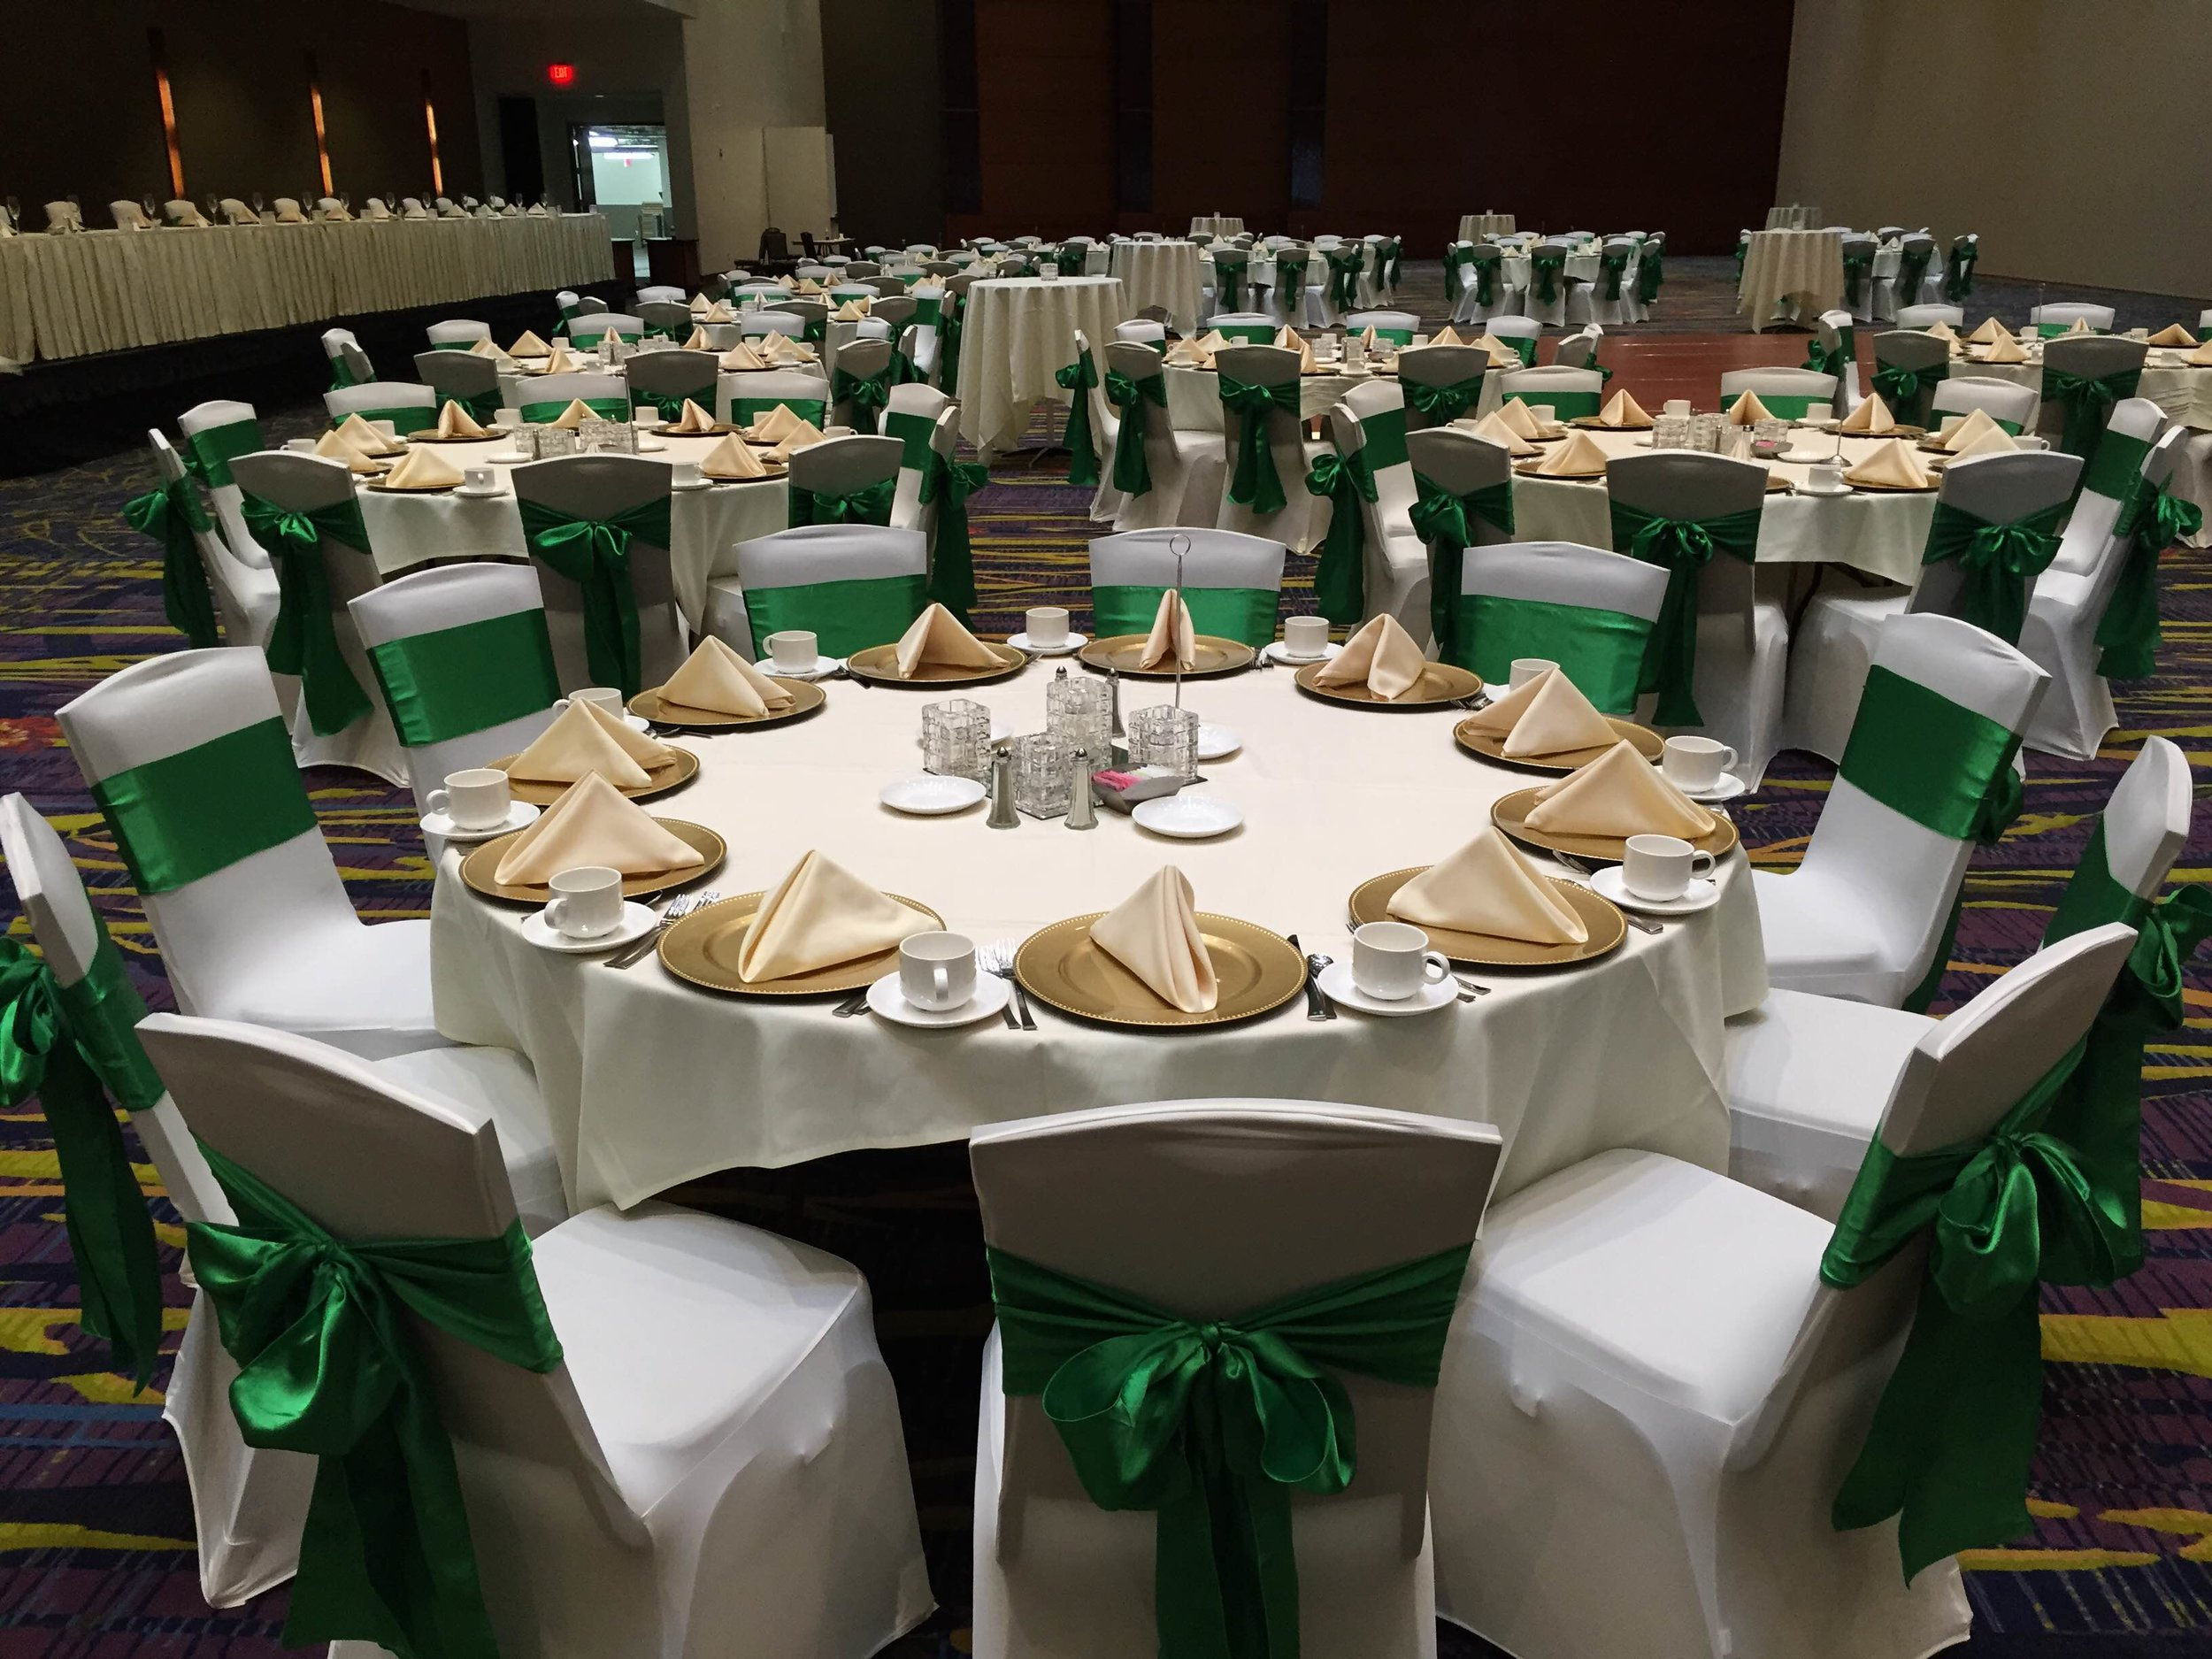 Green sashes, gold chargers, and white chair covers